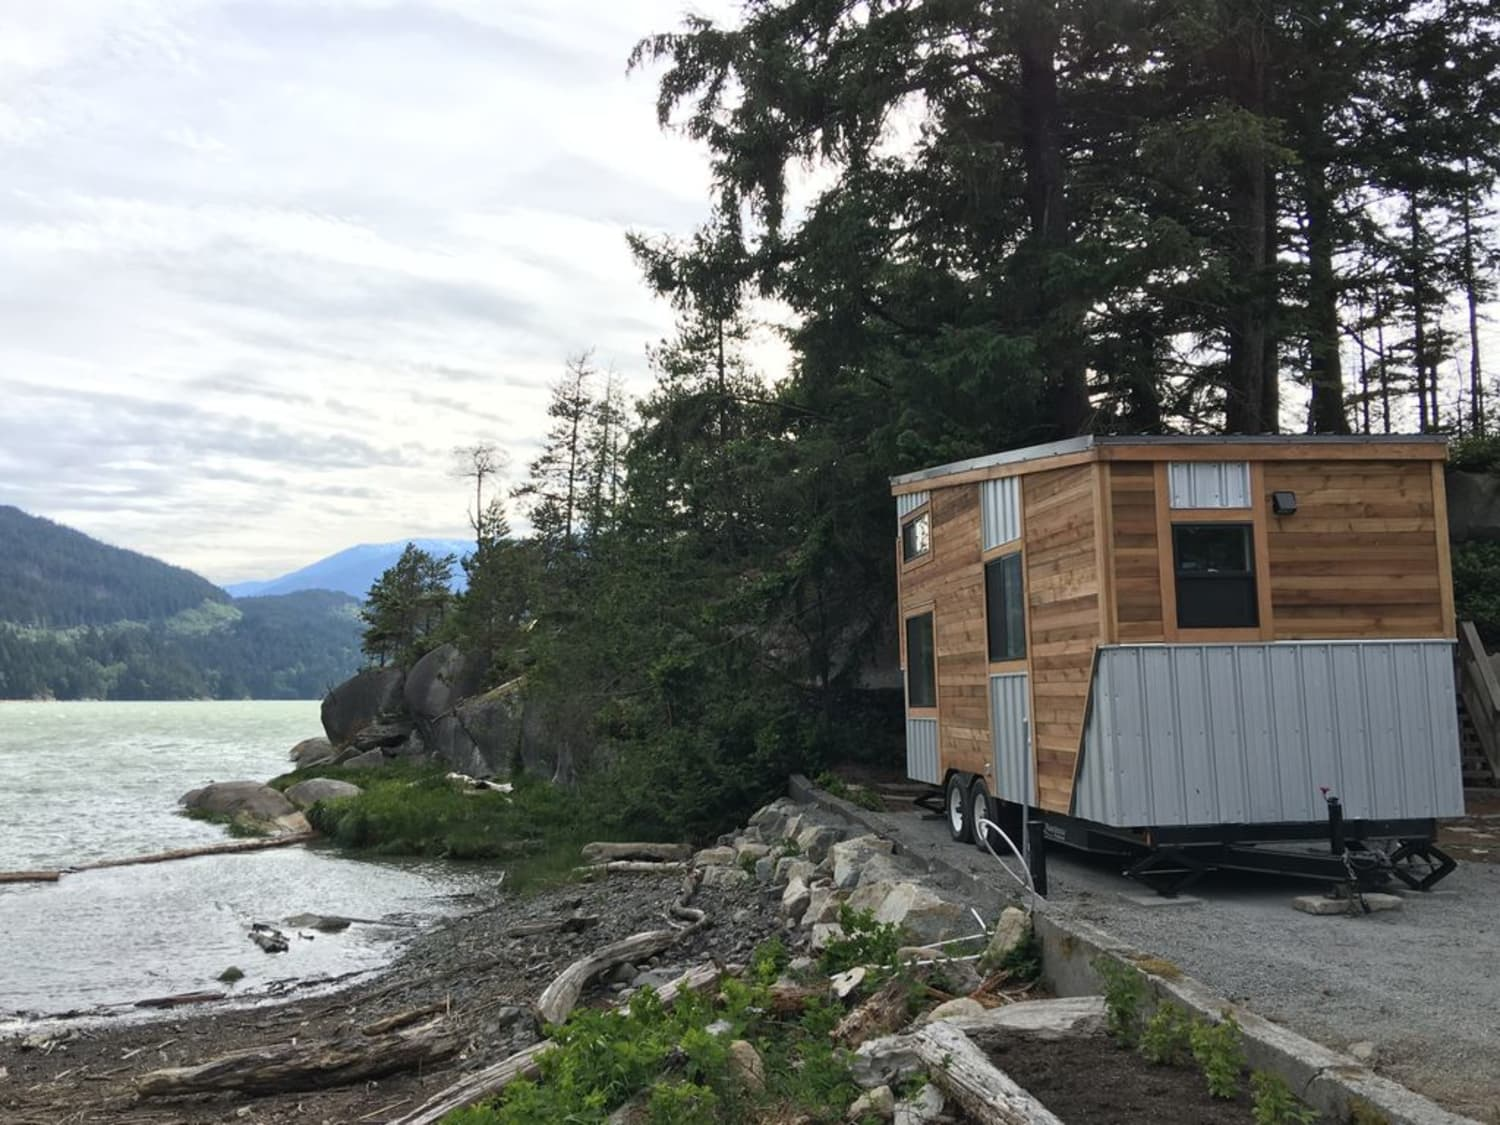 11 Tiny Houses to Rent in the Mountains, Under $100/Night